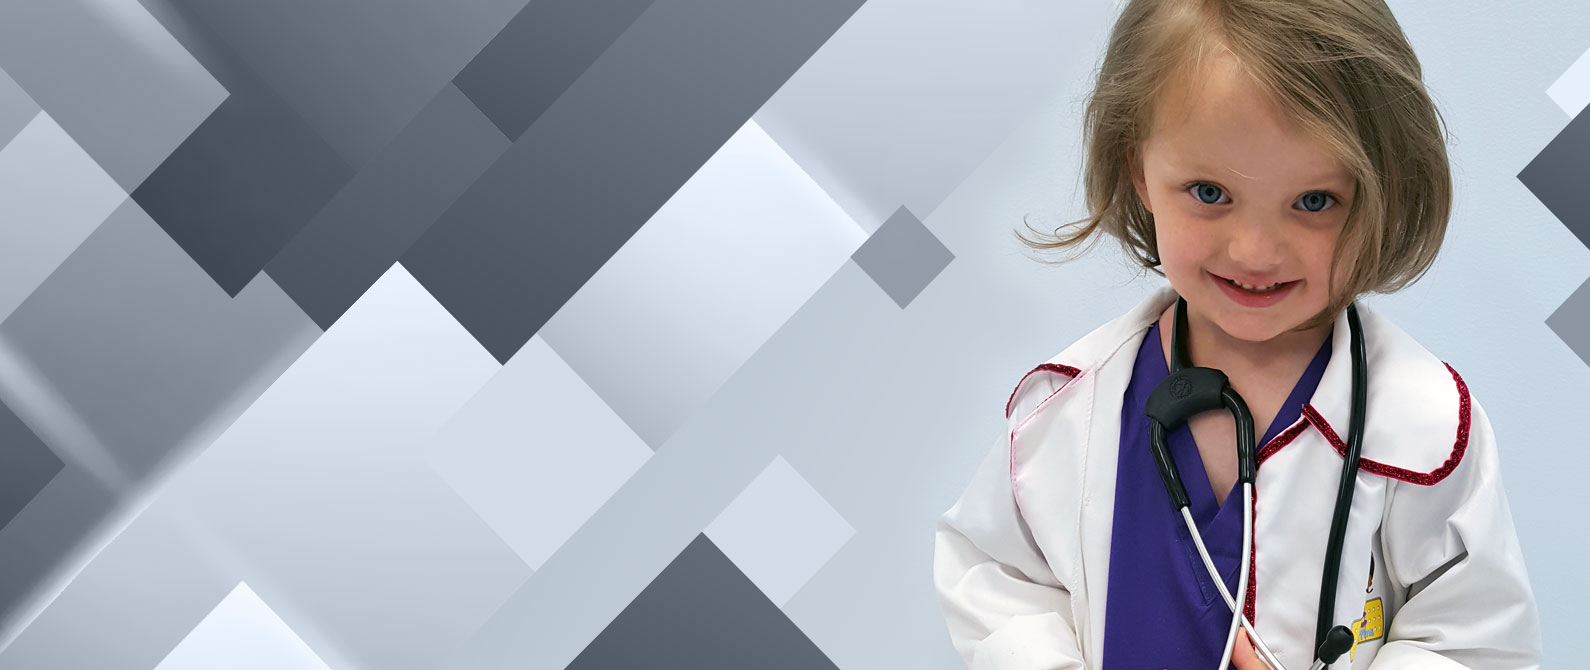 Urgent Care Walk-In Clinic in Knoxville, TN